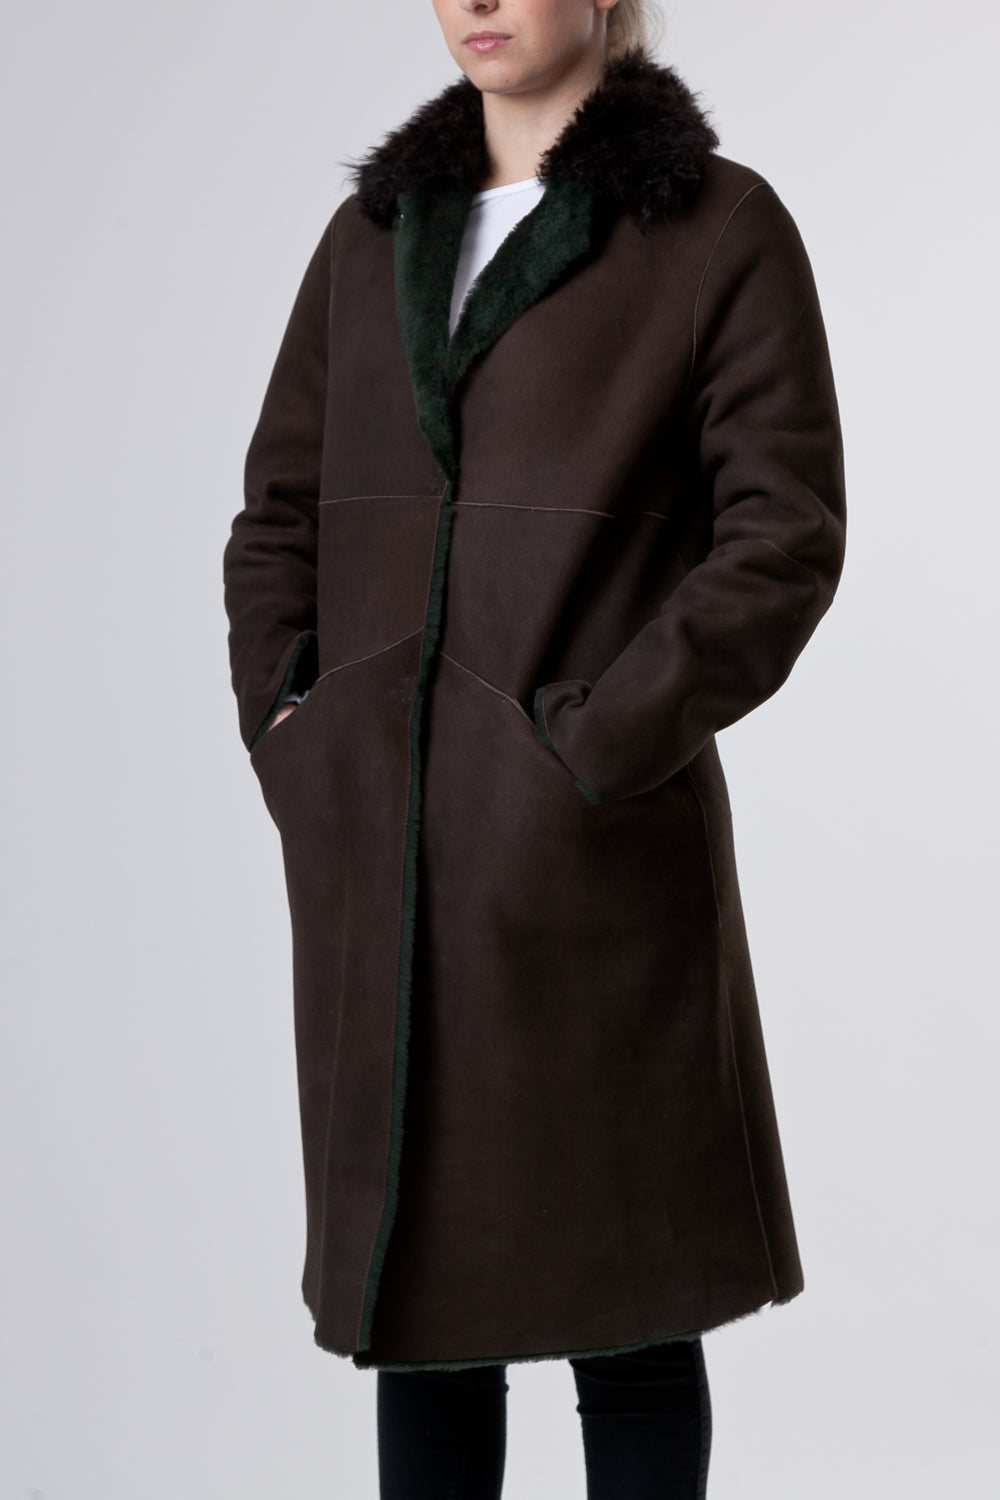 Il Cappotto Brown - Brown Coat